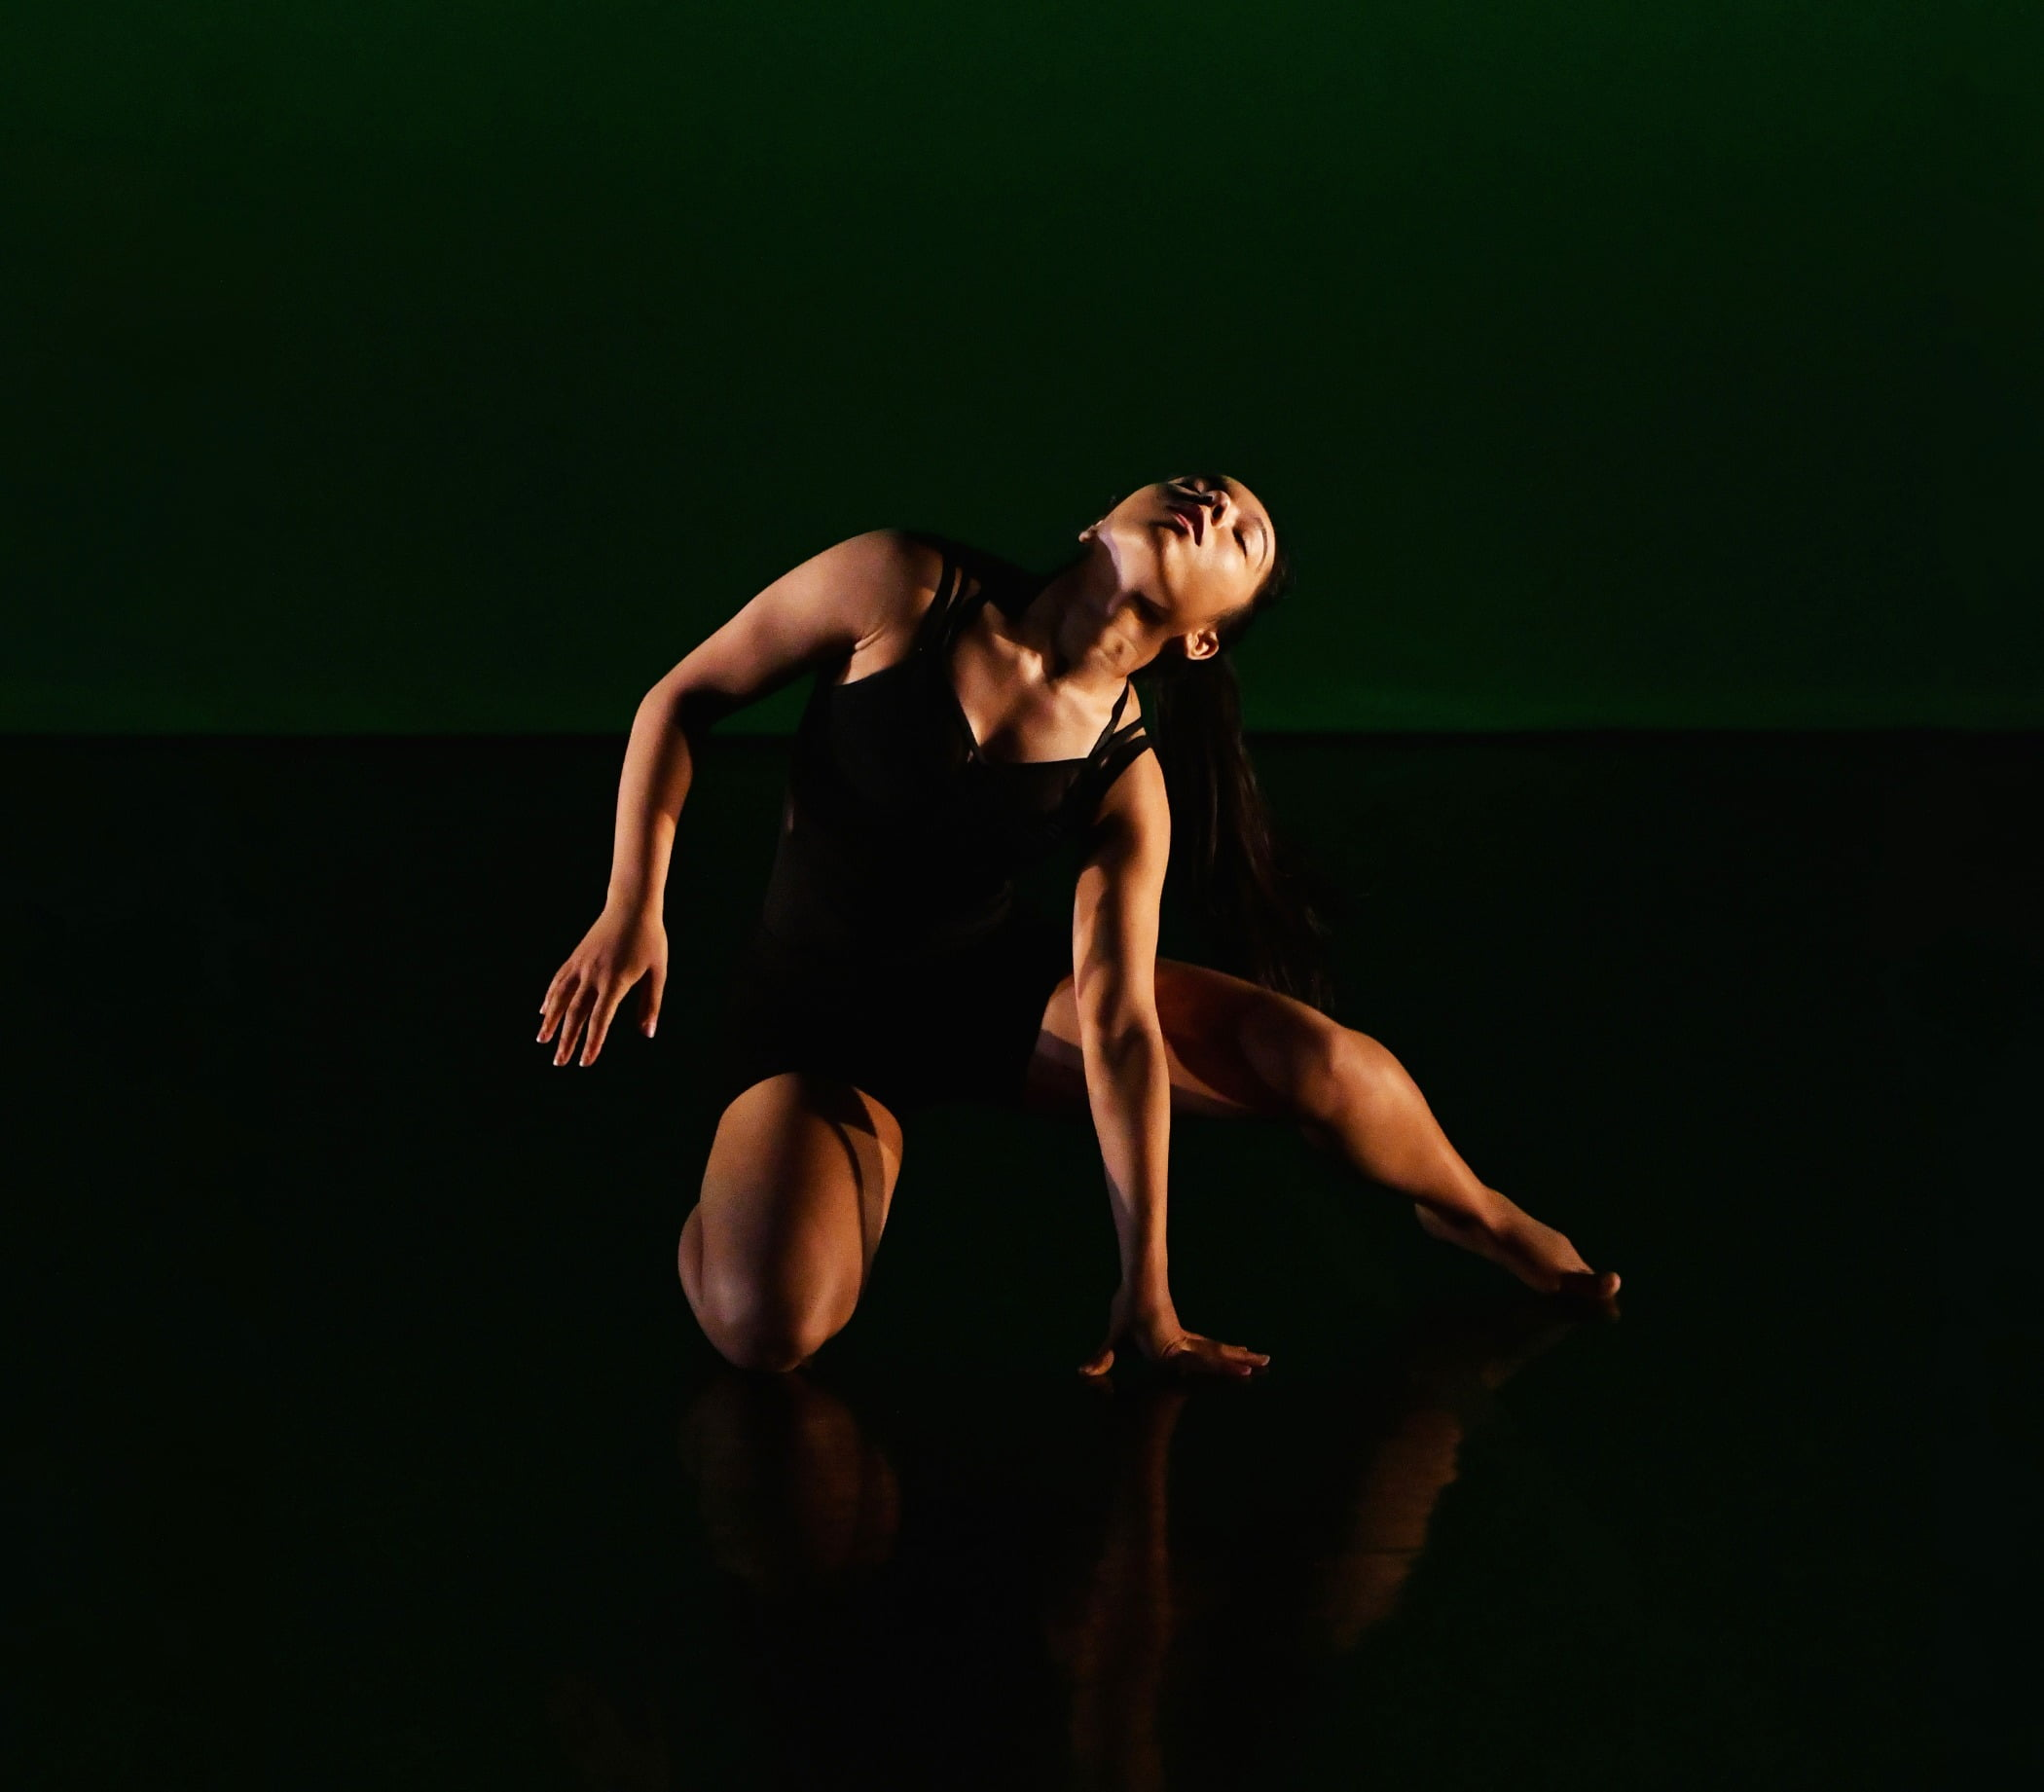 Athletic dance move, Performing arts, Entertainment, Sportswear